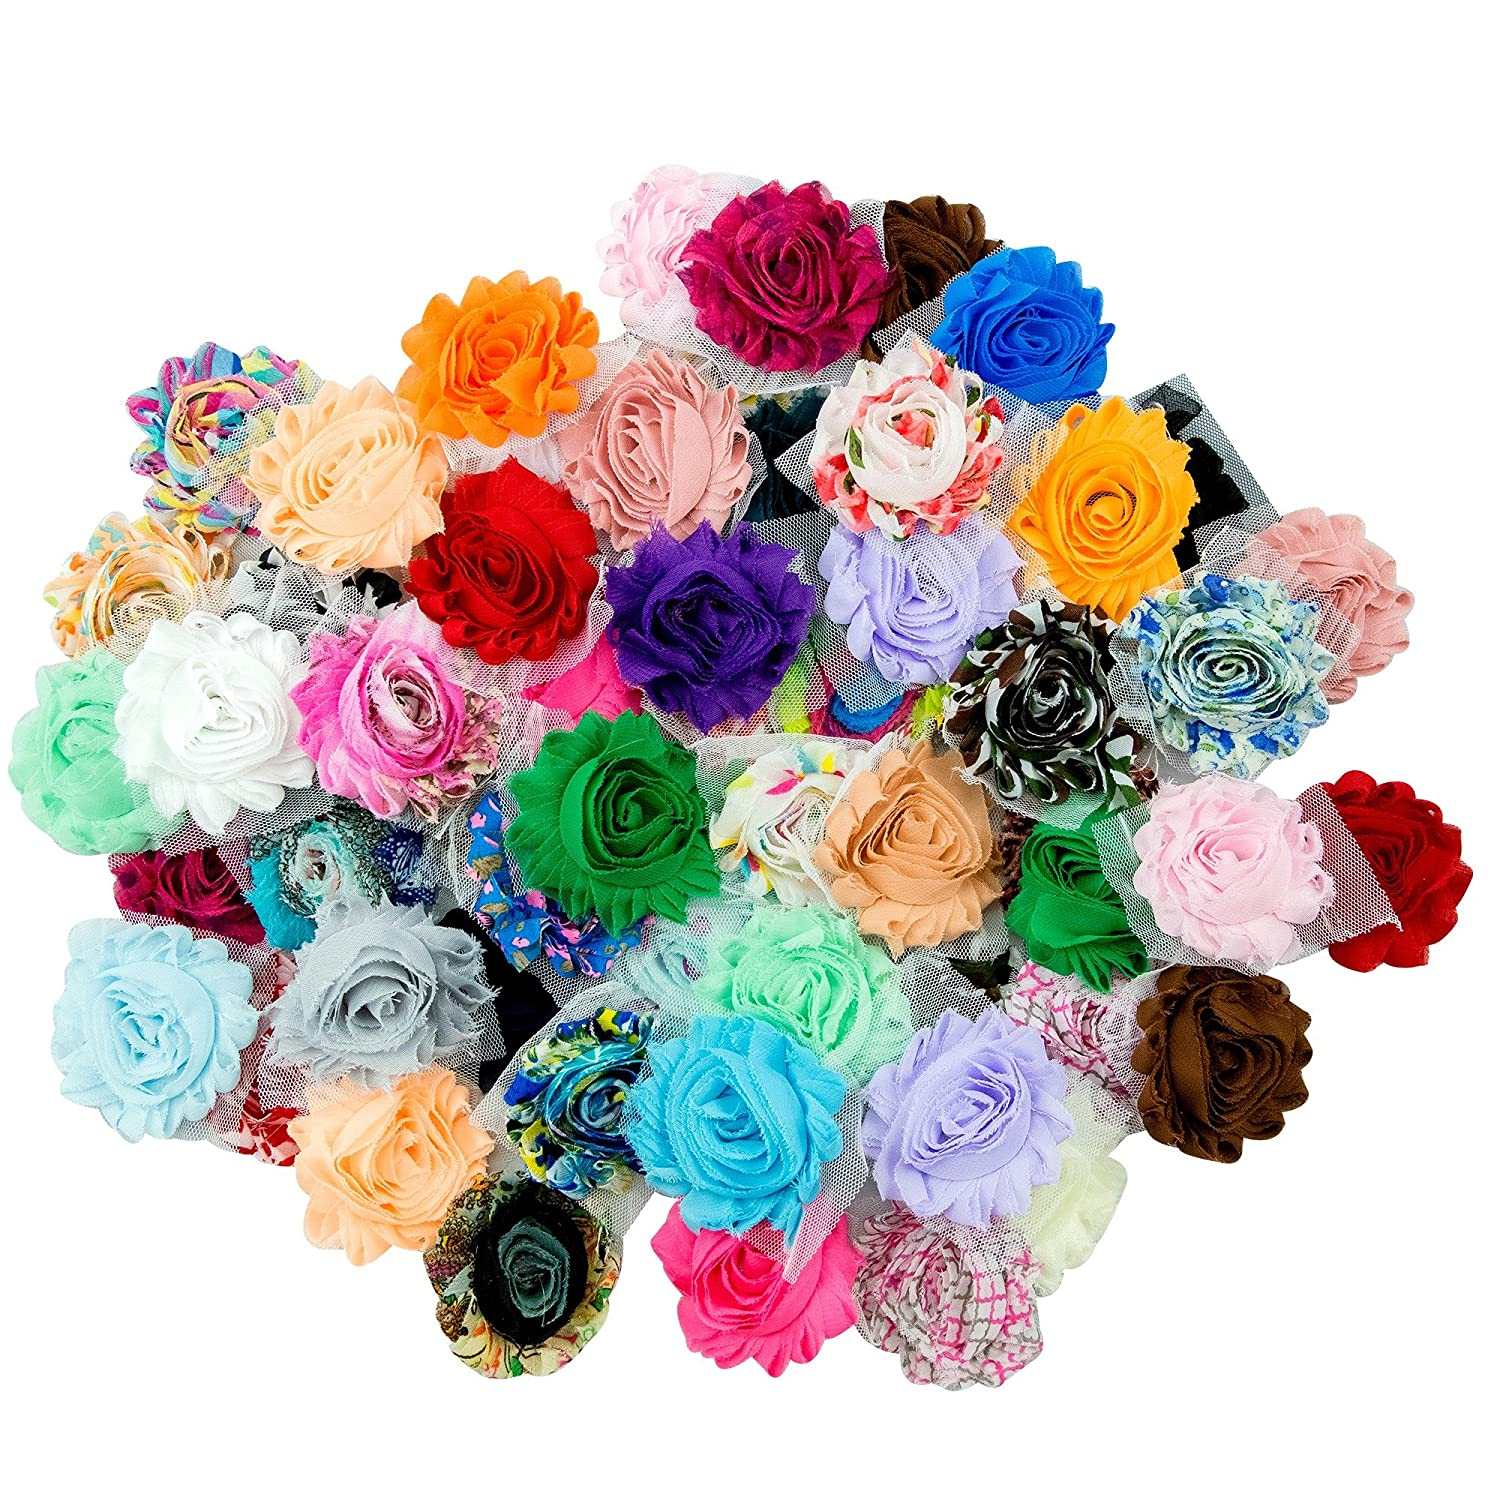 JLIKA (50 pieces) Shabby Flowers - Chiffon Fabric Roses - 2.5 - Solids and Prints Included - Assorted Color Mix - Single Flowers Grab Bag